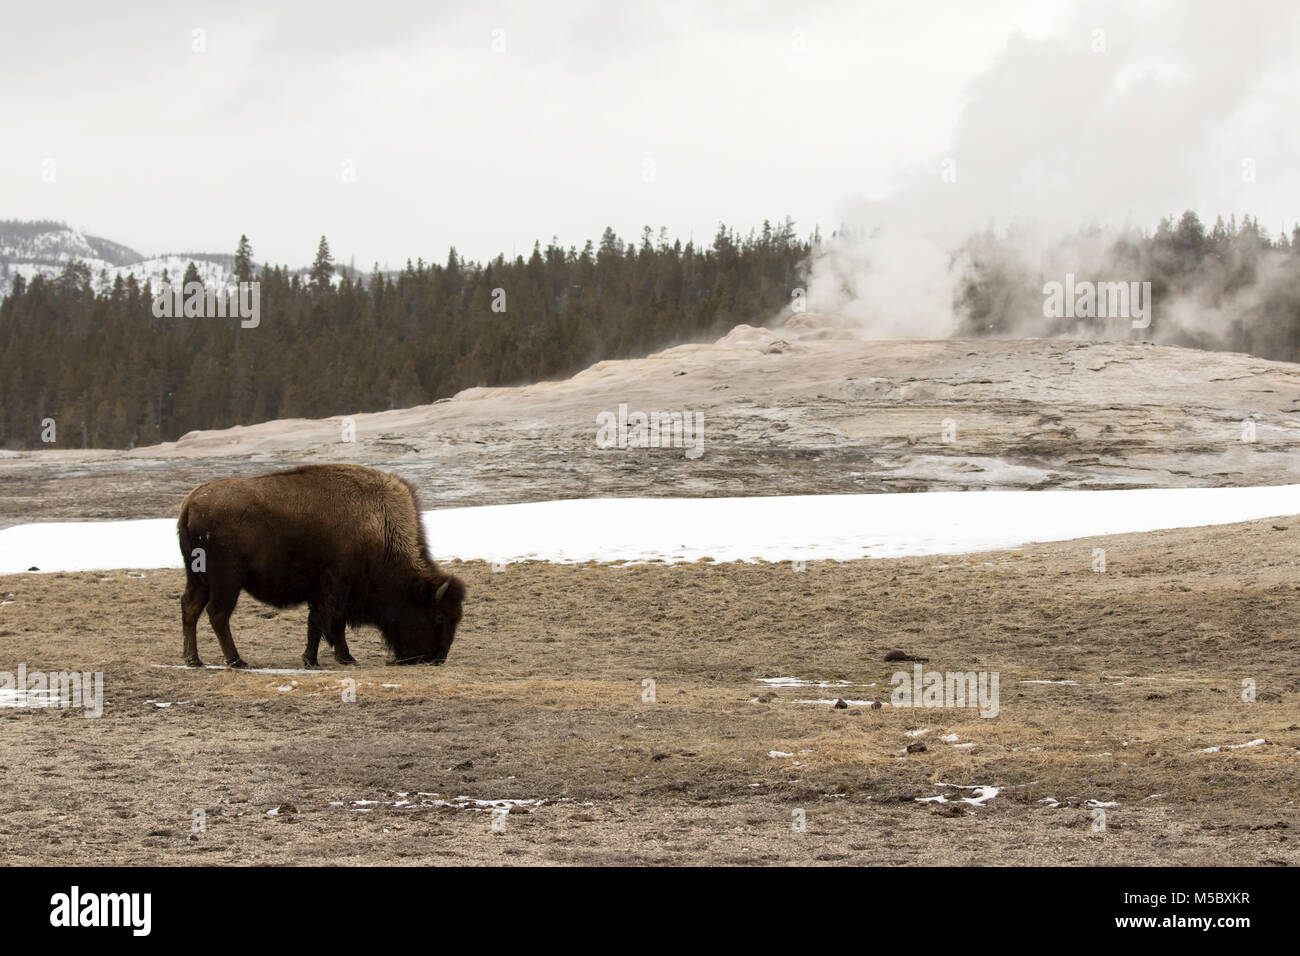 Bison Or American Buffalo By Old Faithful Geyser In